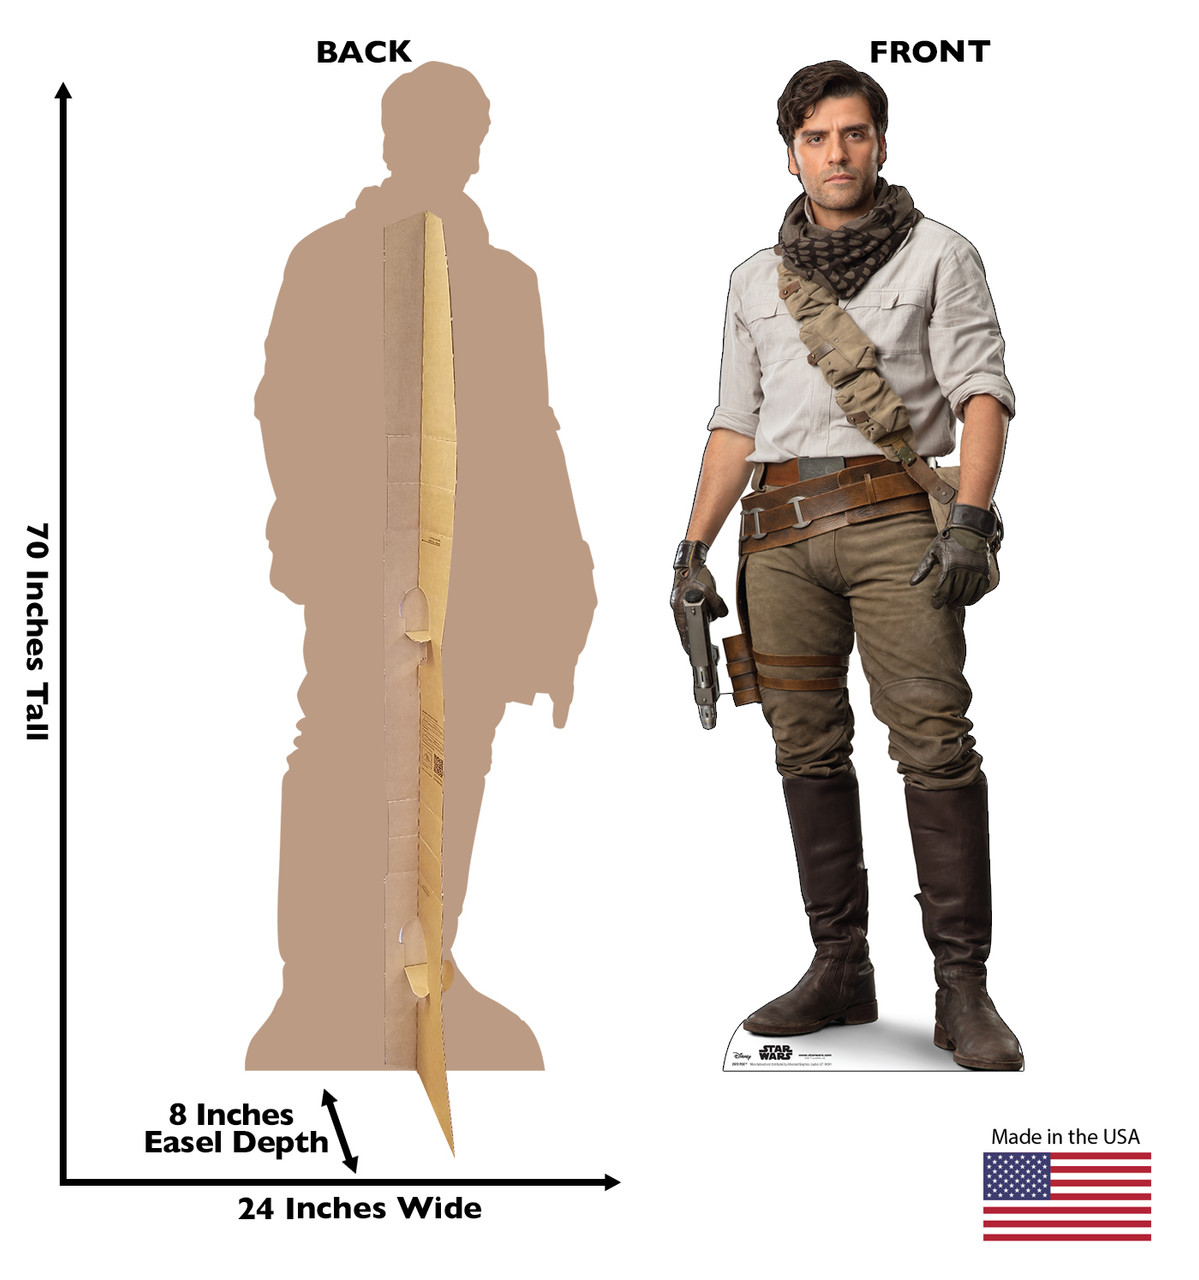 Life-size cardboard standee of Poe™ (Star Wars IX) with back and front dimensions.